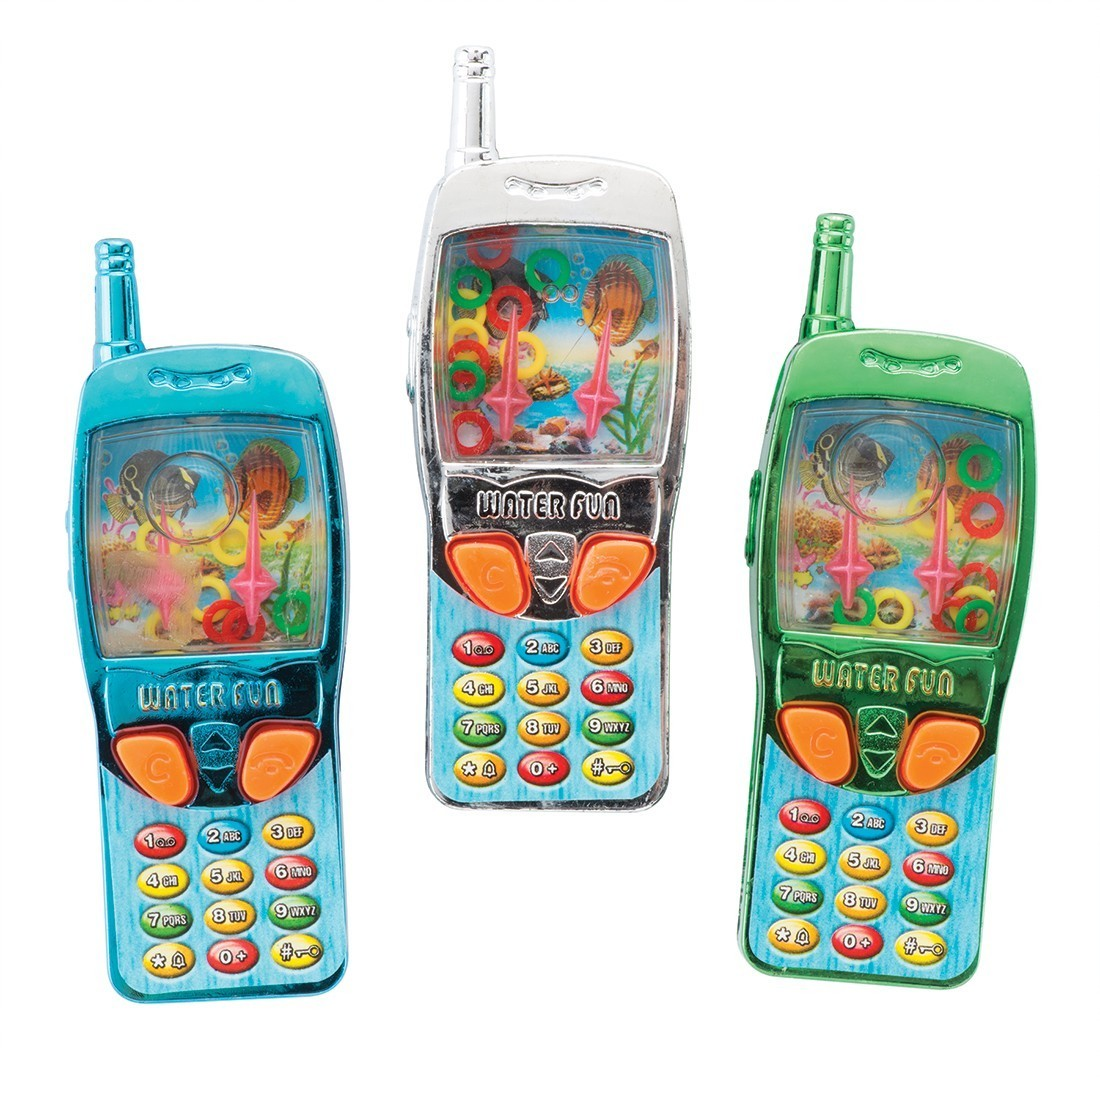 Cell Phone Water Games [image]